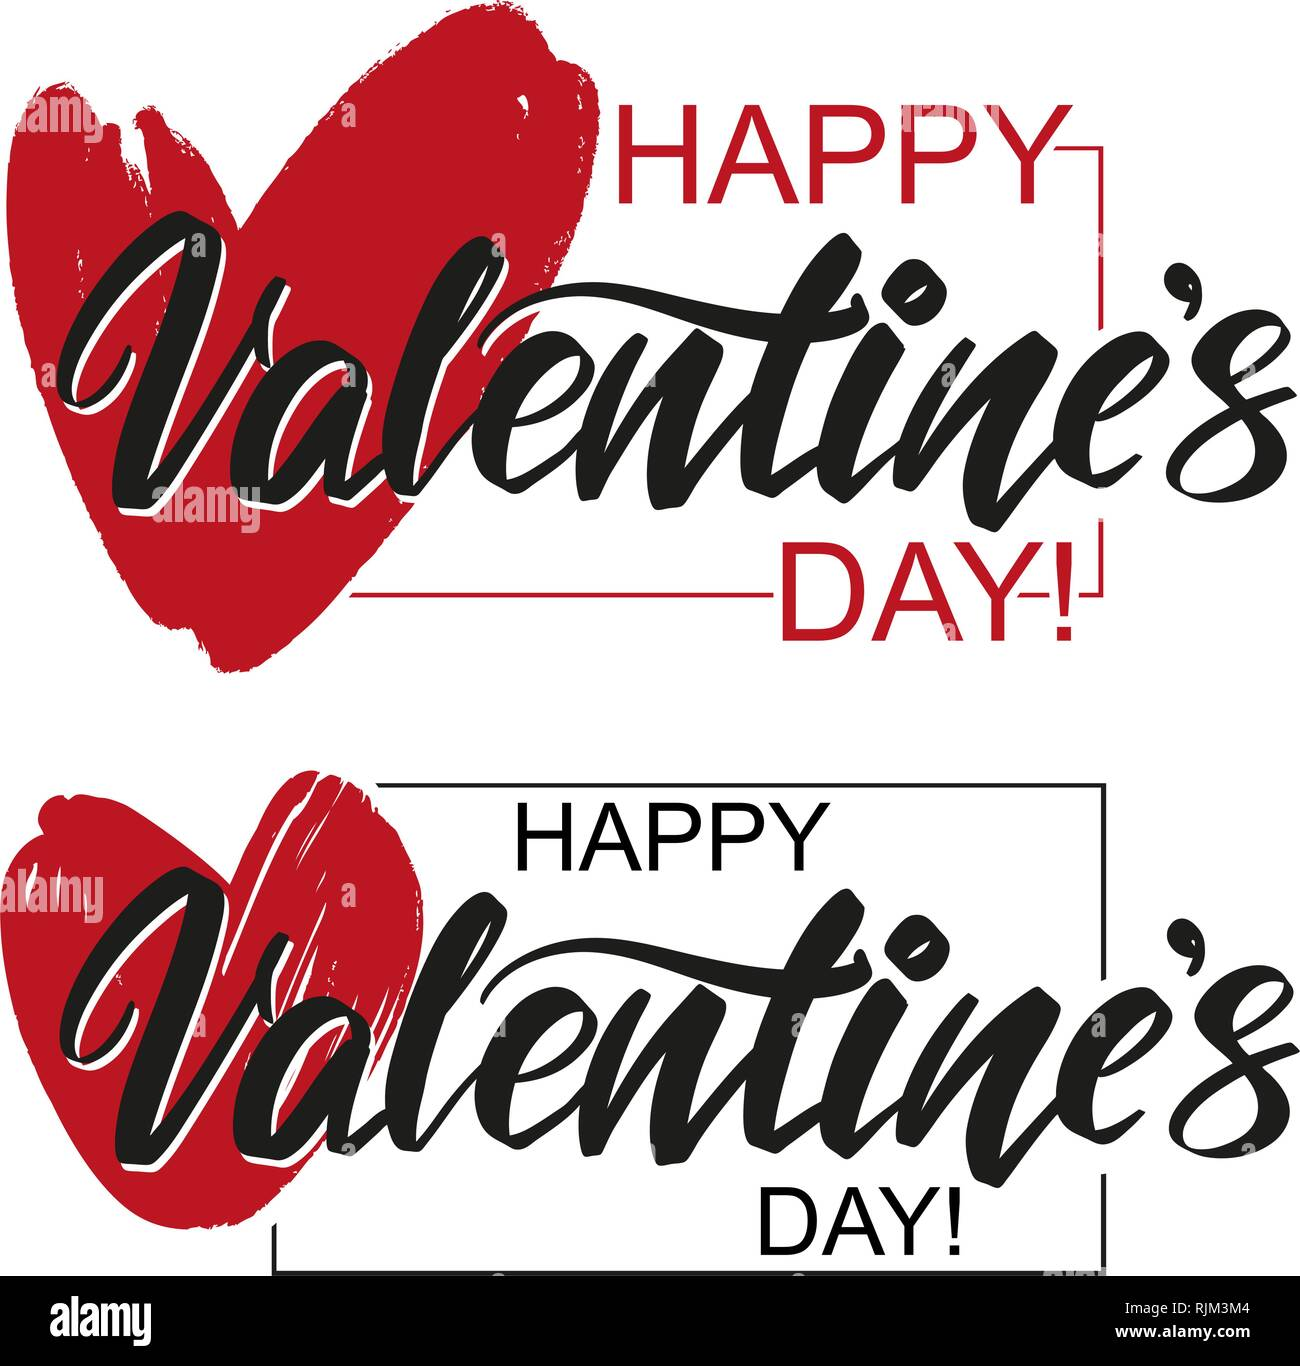 Happy Valentine s day text auf dem Hintergrund der Herz auf weißem Hintergrund. , Valentinstag, Greeting Card Hand gezeichnet Vektor-illustration Skizze Stockbild